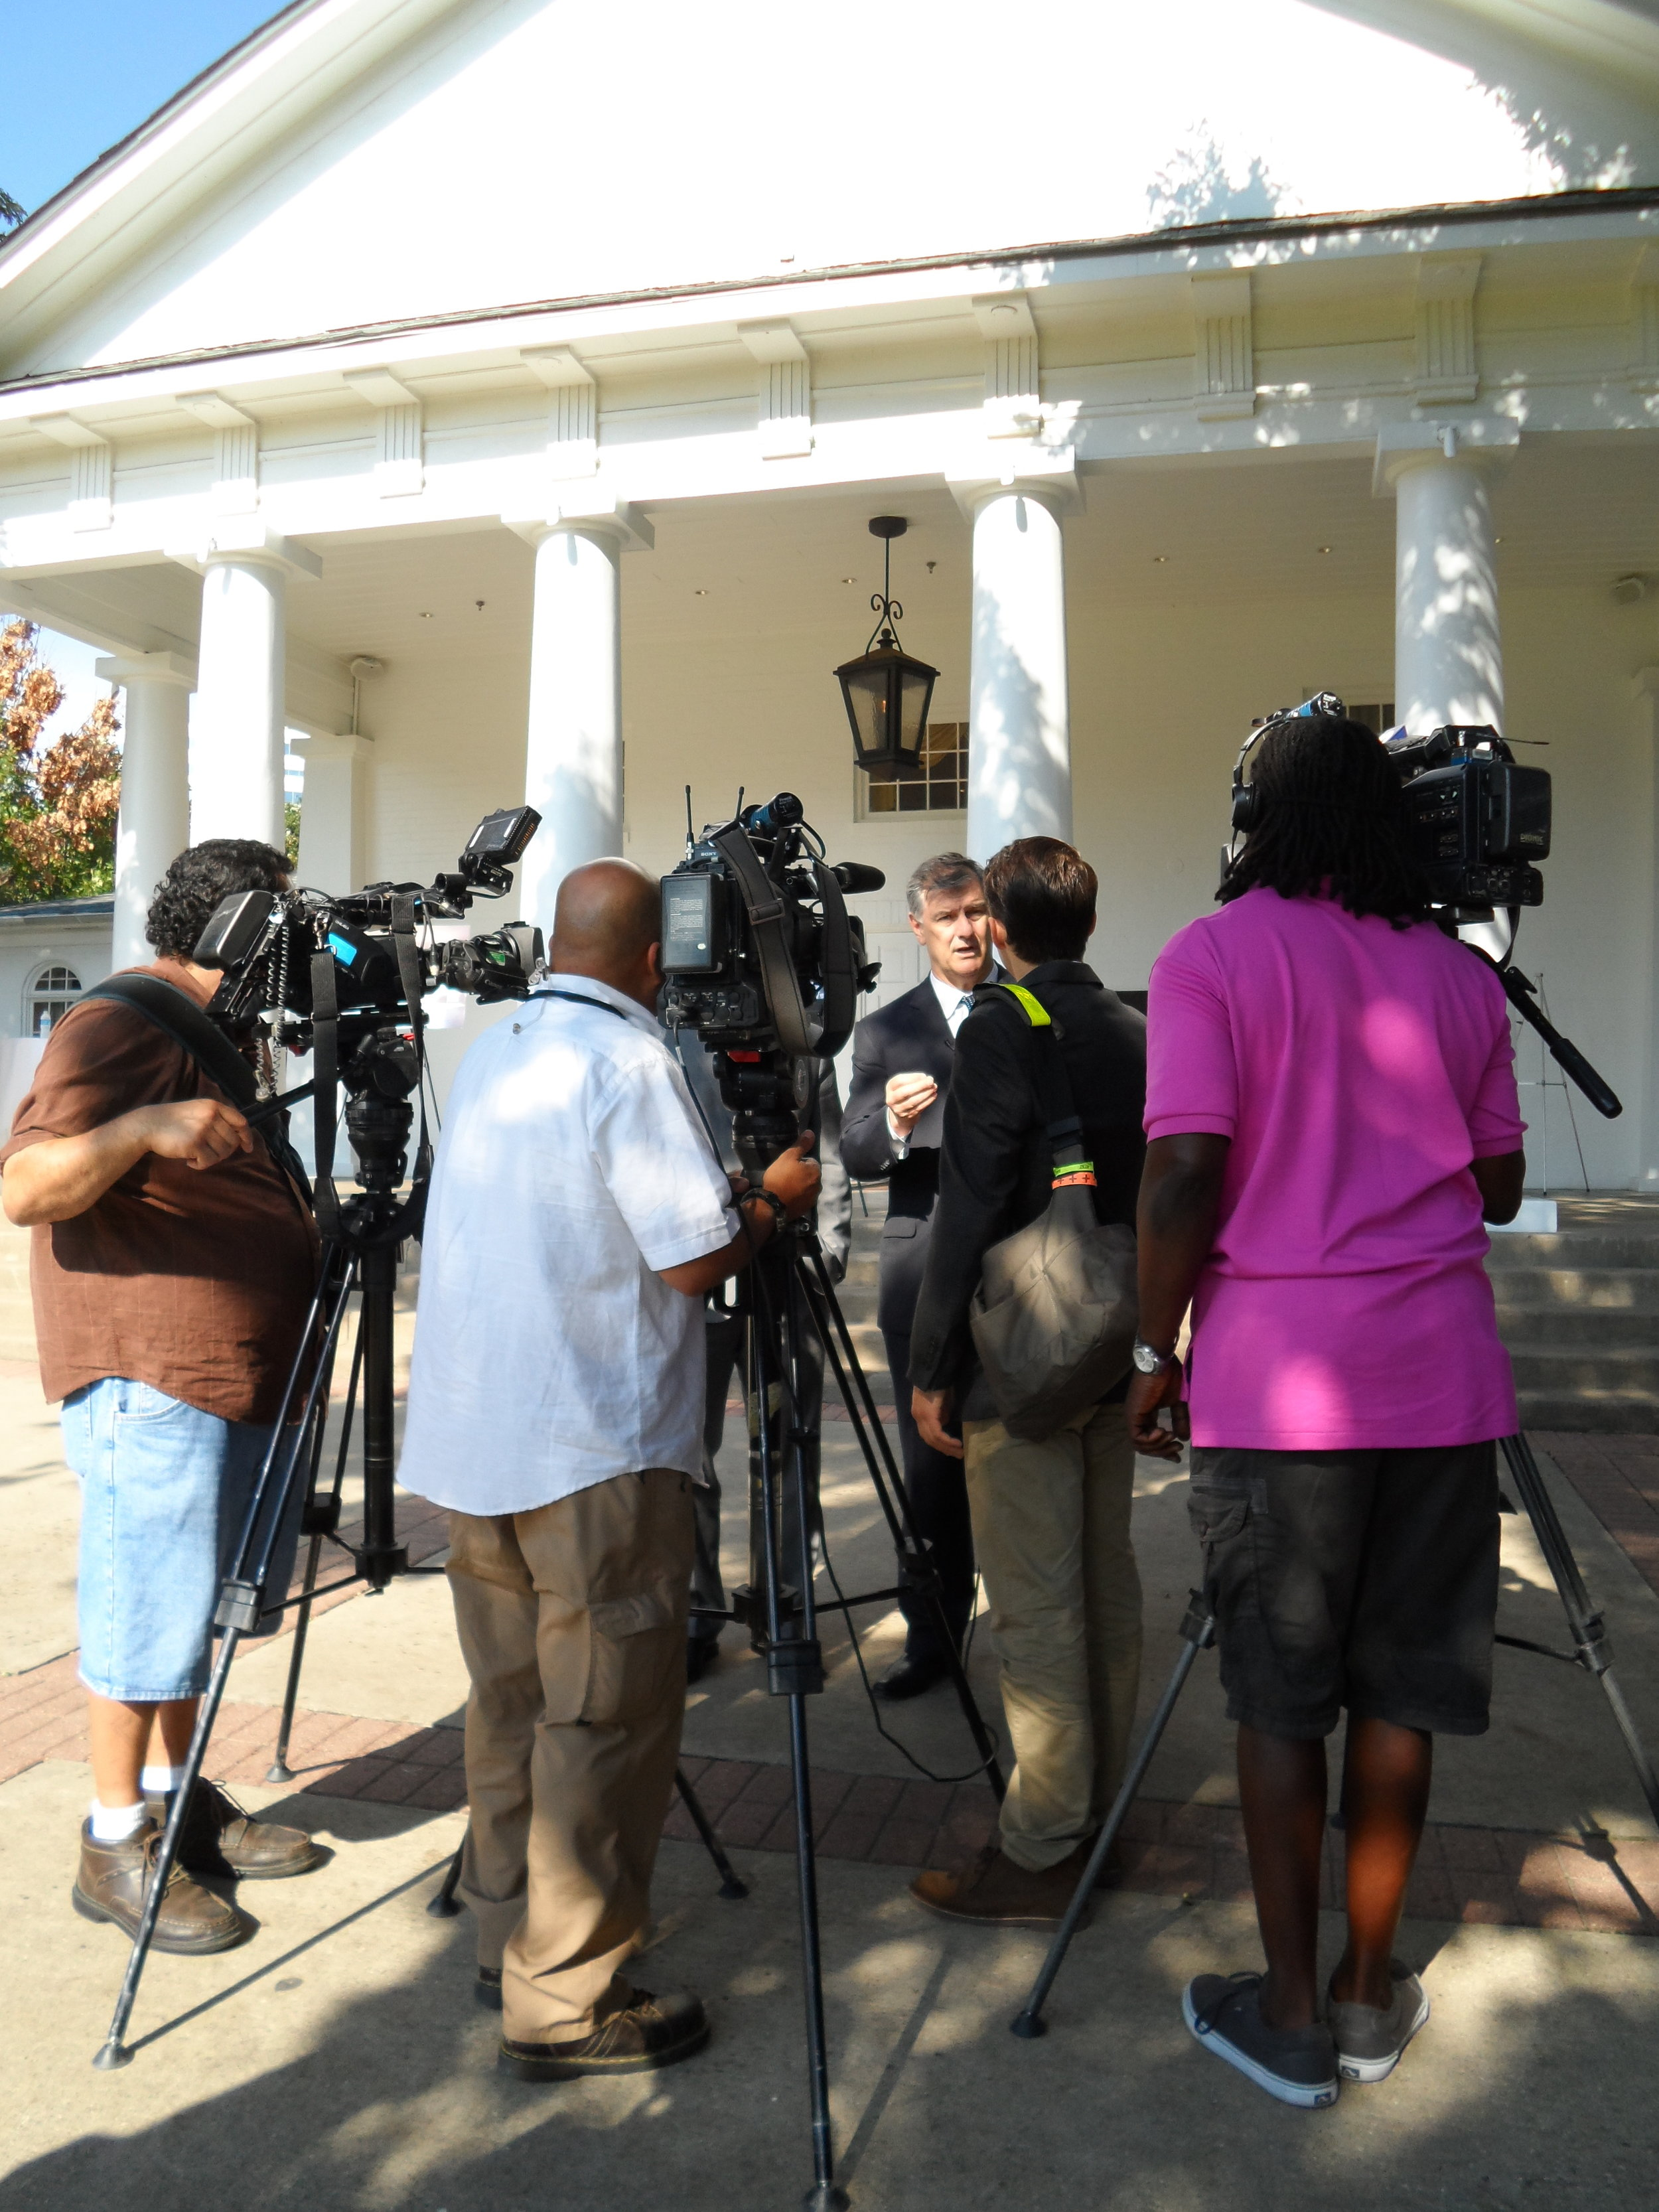 Dala organized a press conference on the steps of the iconic Arlington Hall with remarks issued by  Dallas Mayor Mike Rawlings  to celebrate 75 years of history at this well-known landmark in Dallas' Turtle Creek.